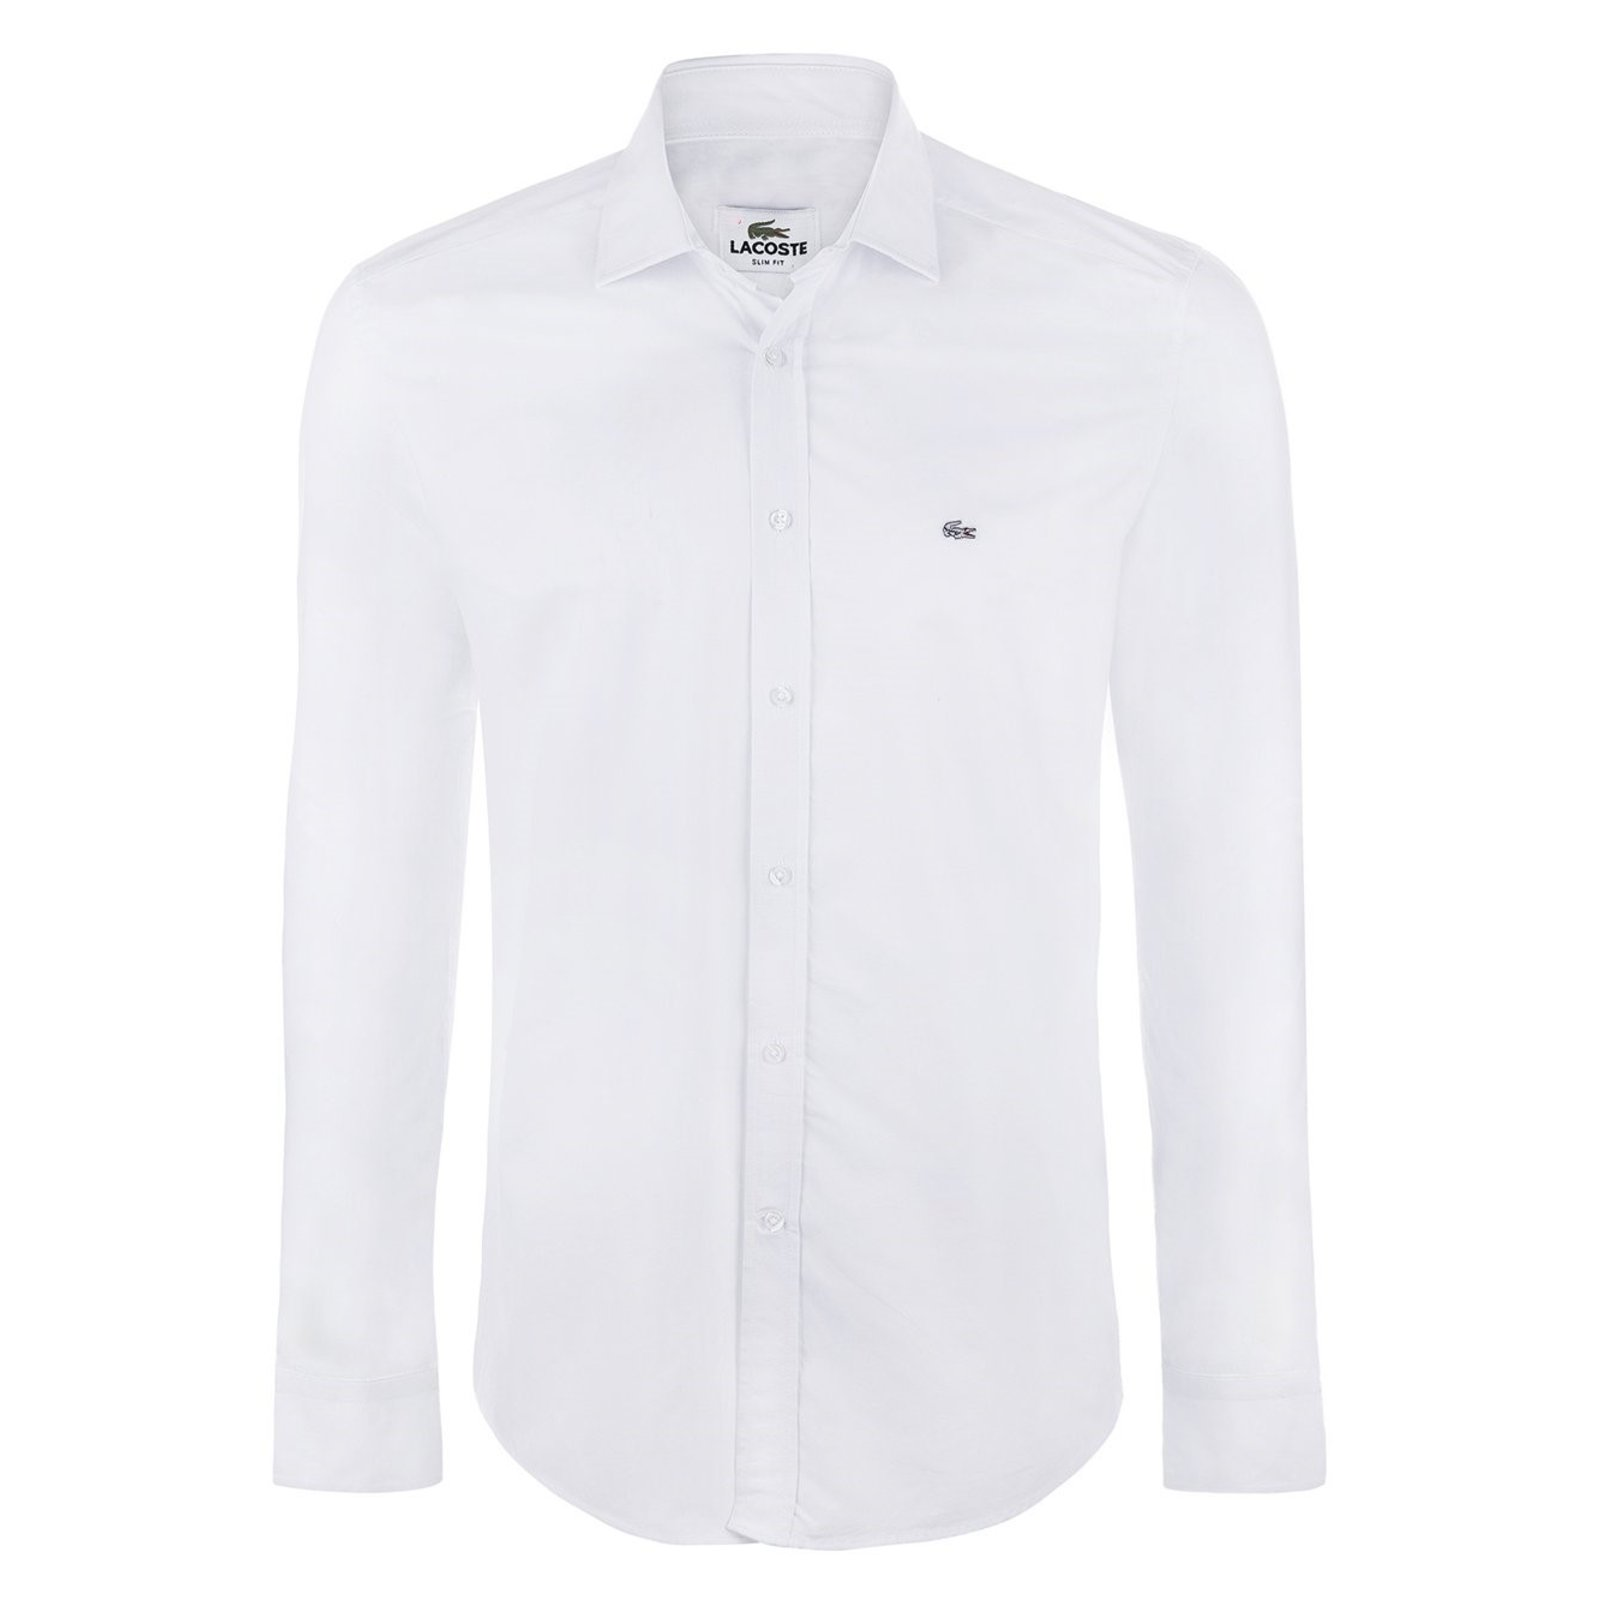 411a3fff LACOSTE BRAND NEW SLIM FIT WHITE SHIRT SIZE EU 40